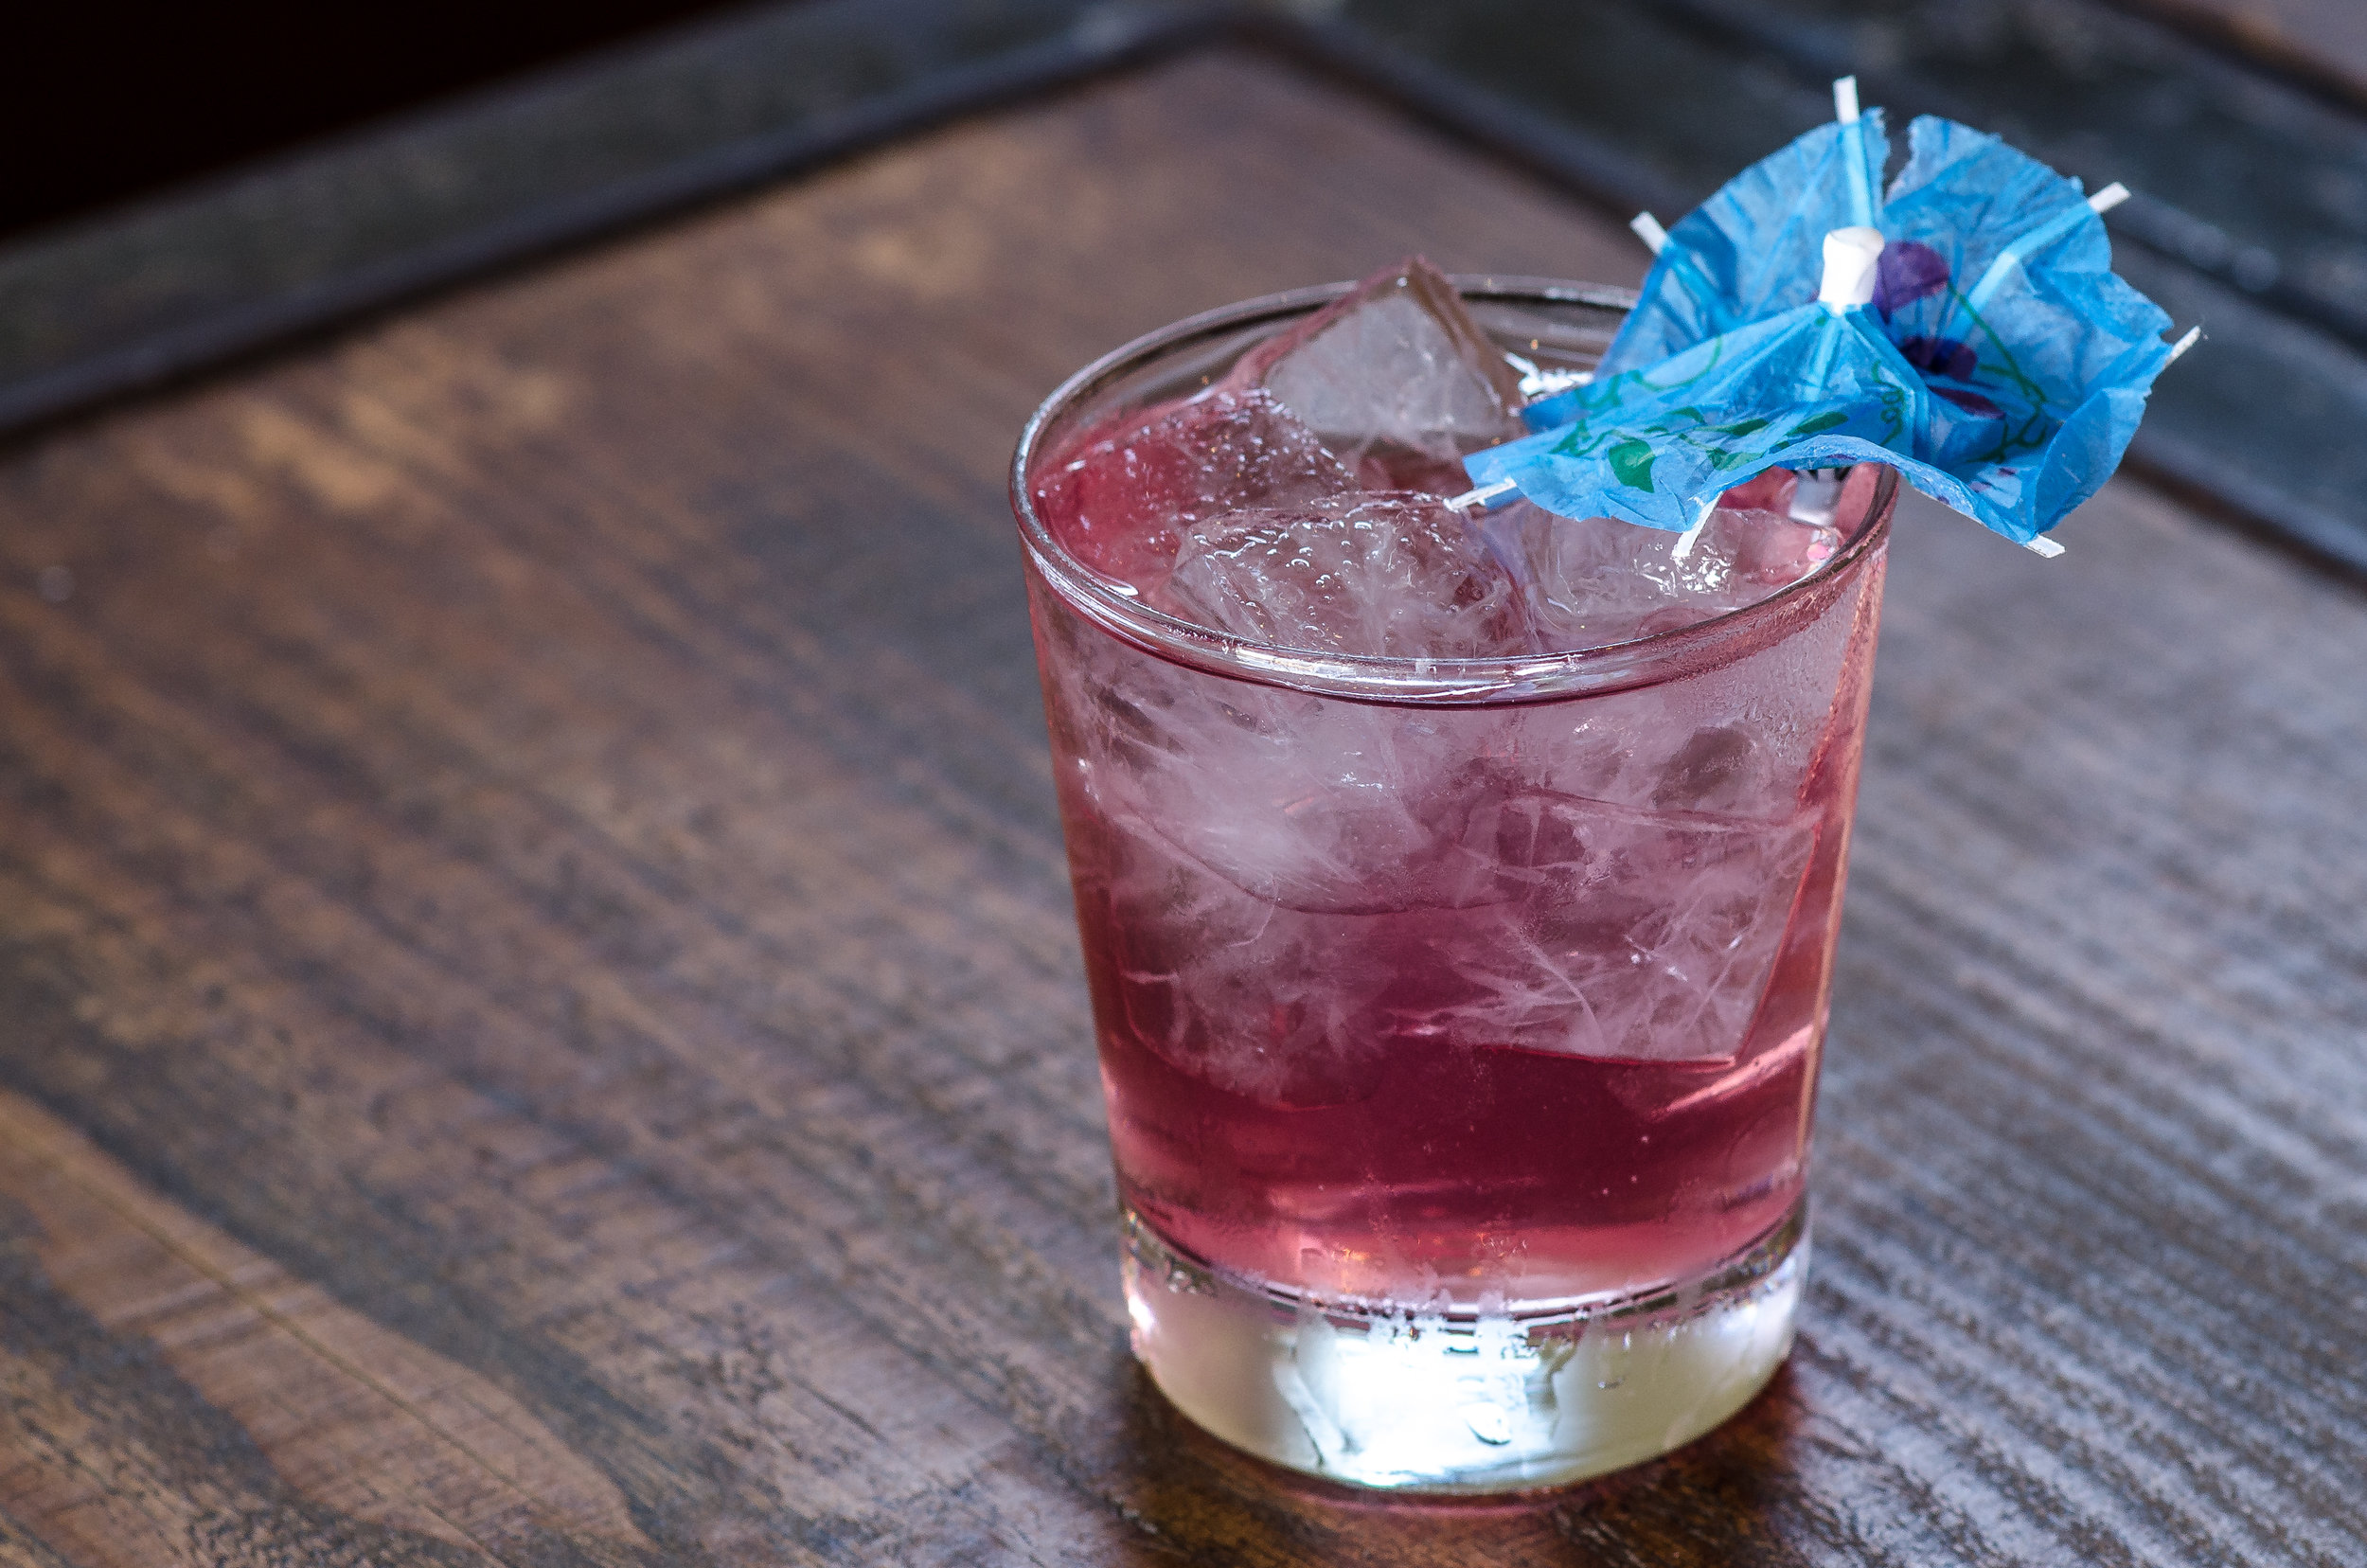 The Ginnie Yon Yon cocktail pays tribute to the original flying monkey of the Heights.